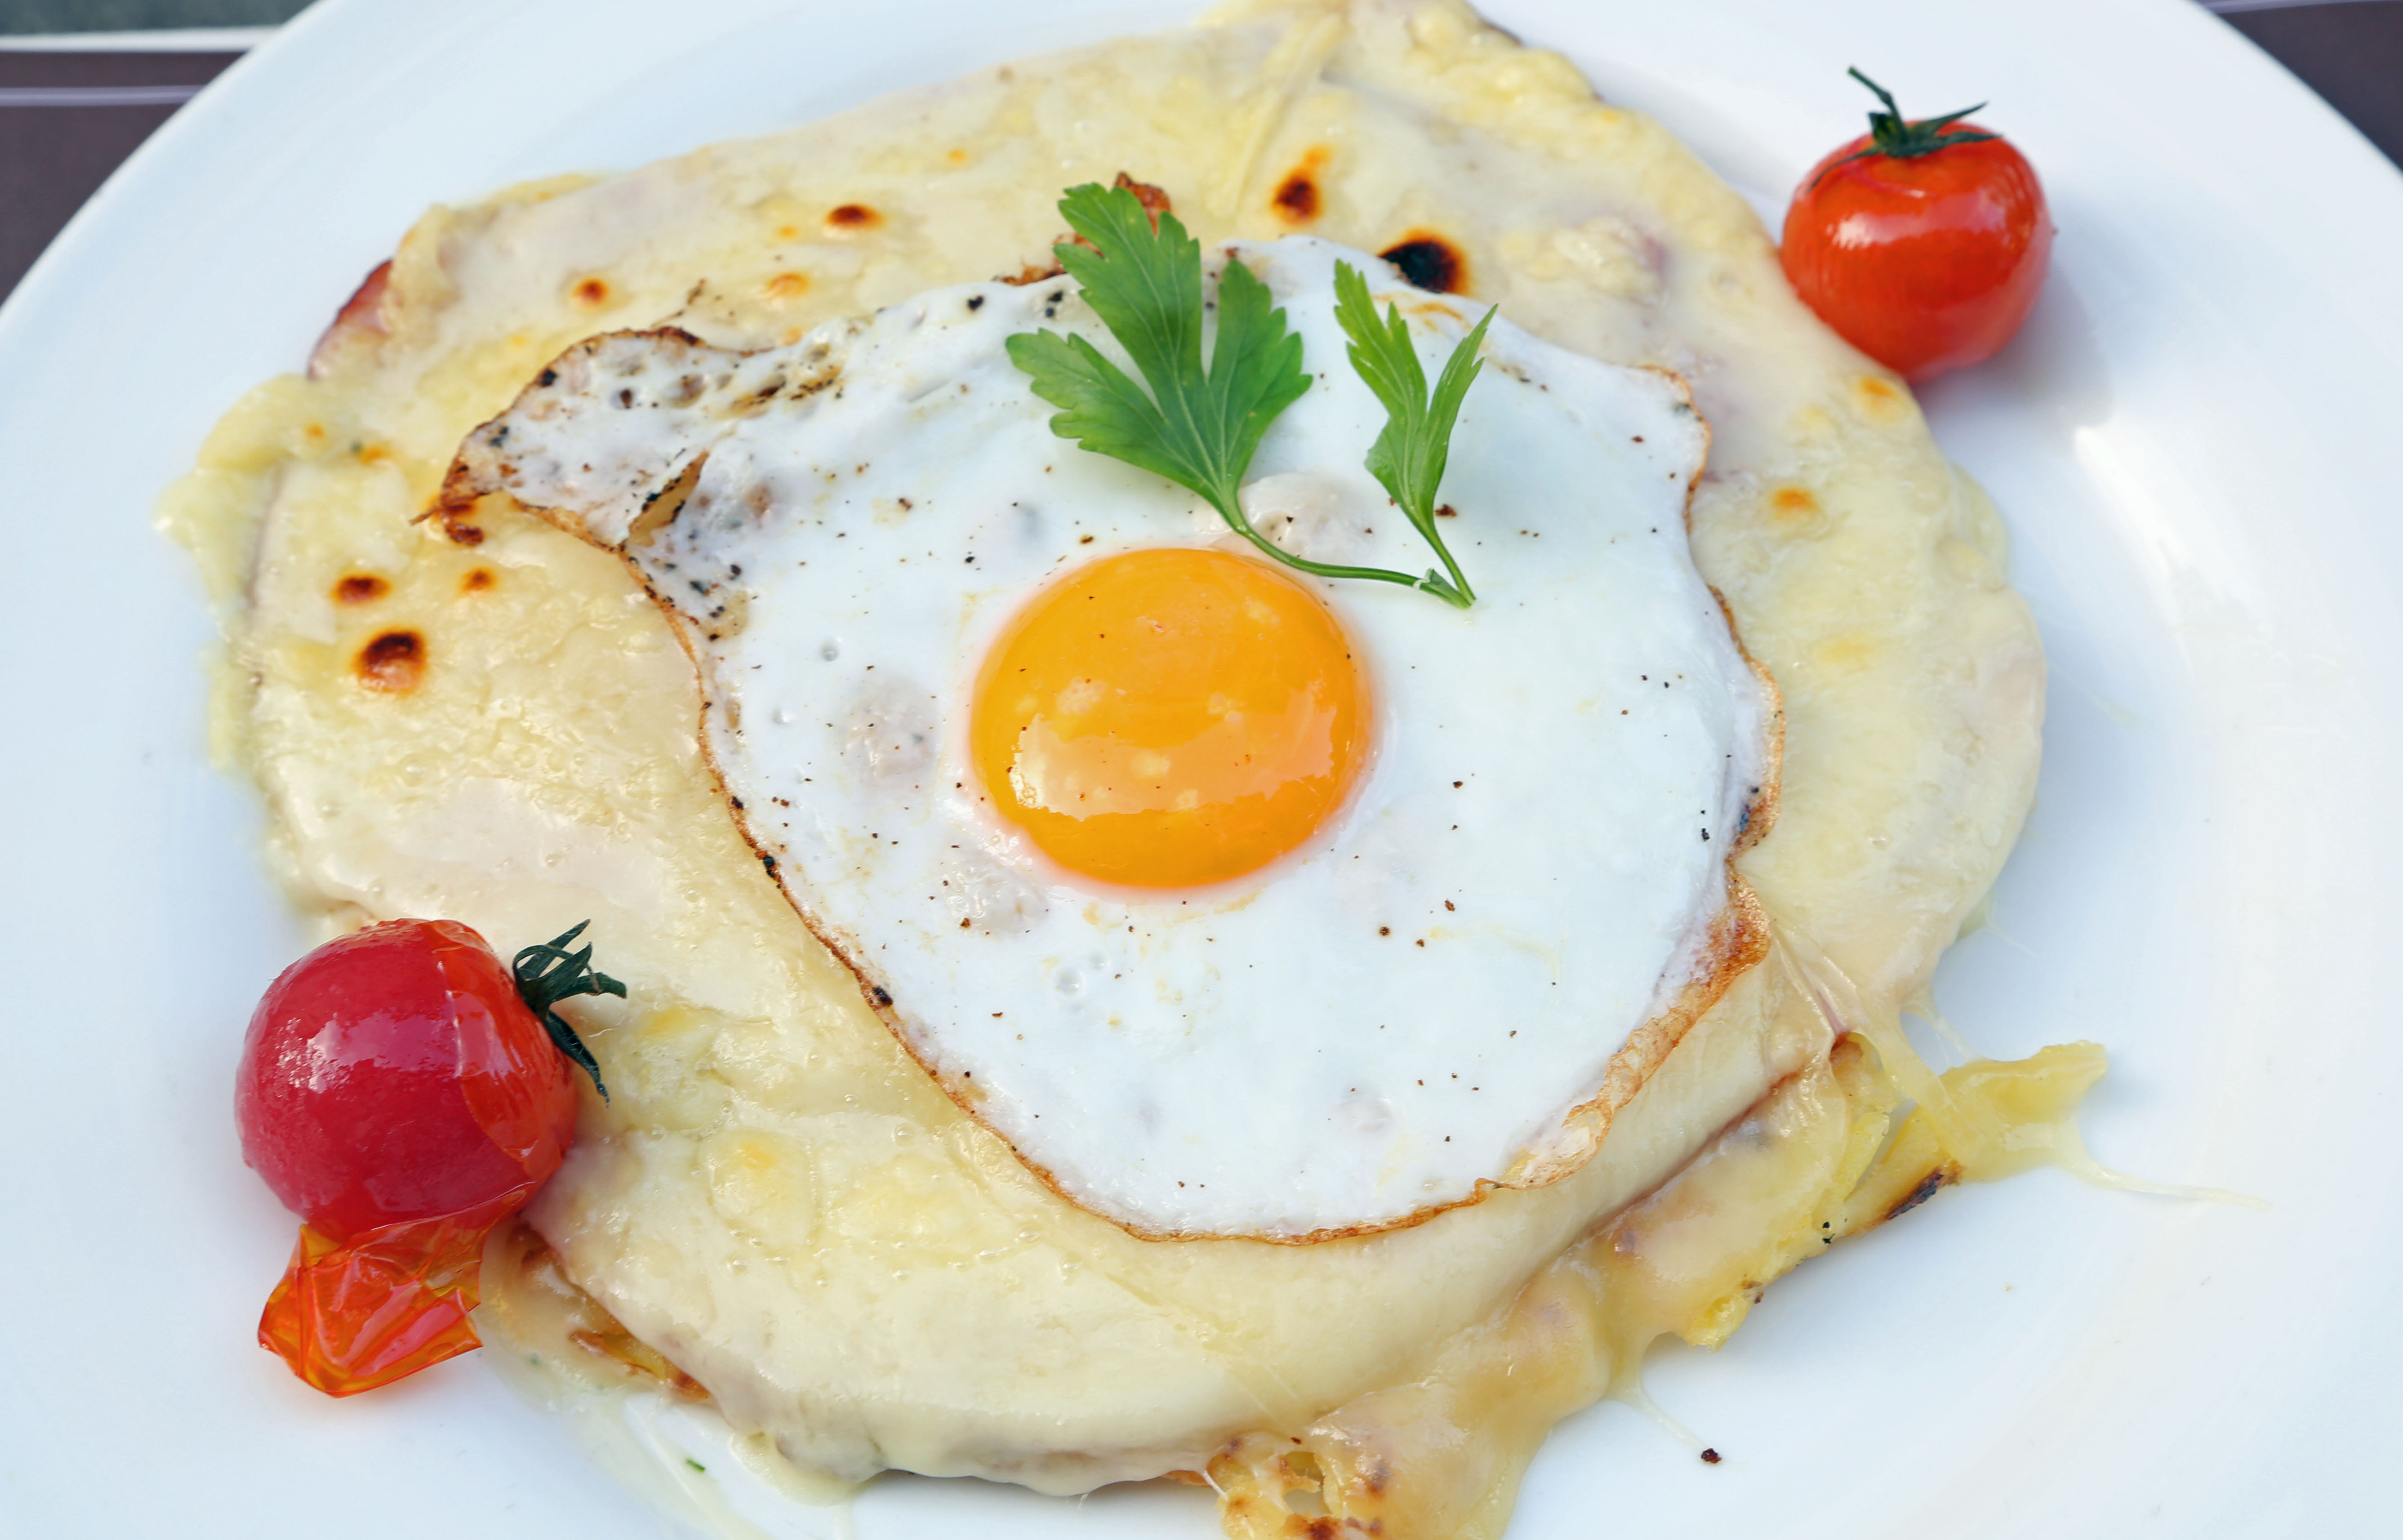 What is there to eat in switzerland plenty a02a38591small forumfinder Image collections